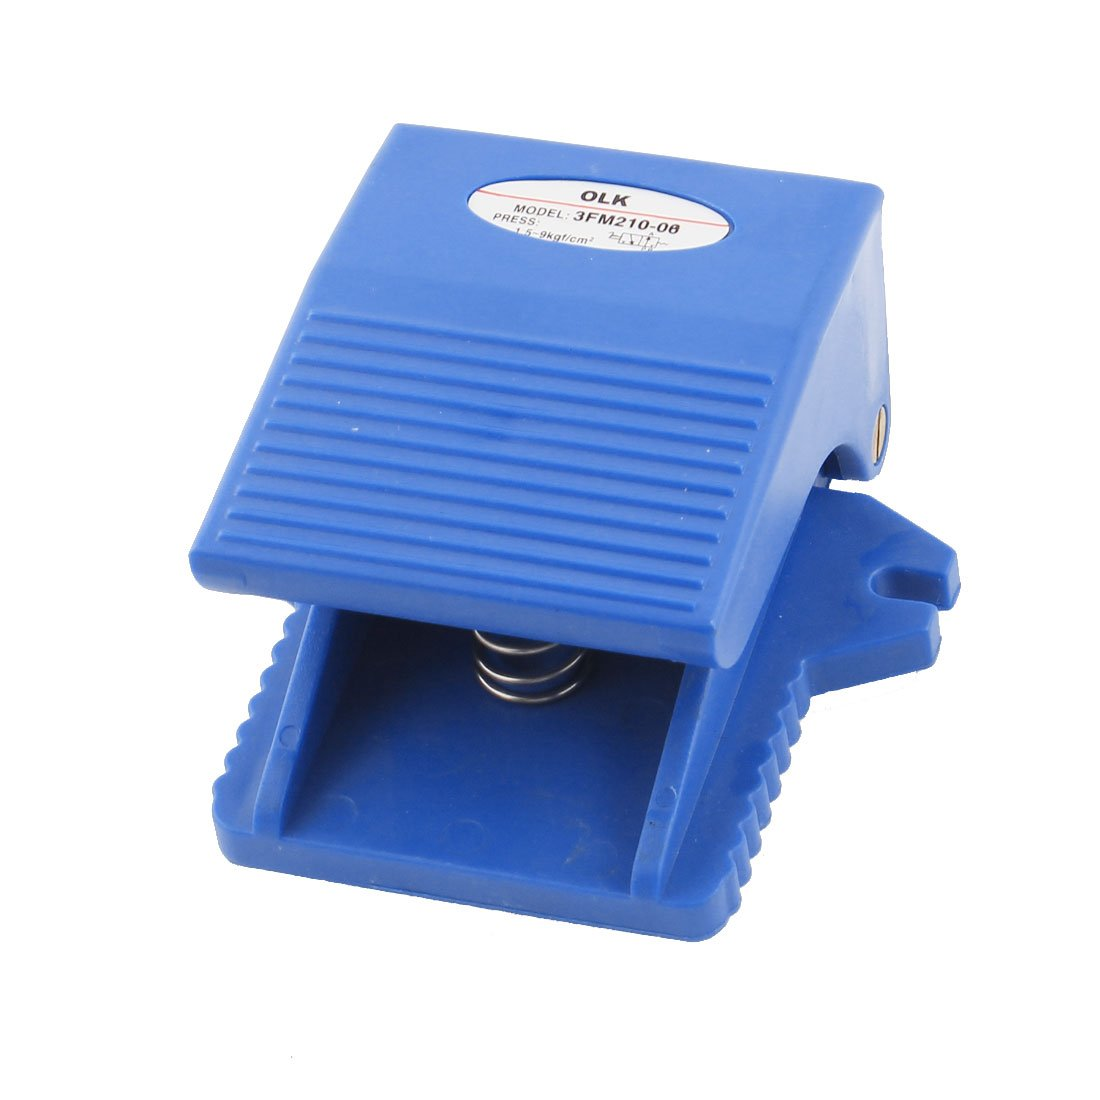 3 Way 2 Position Antislip Pedal Momentary Pneumatic Foot Valve Switch